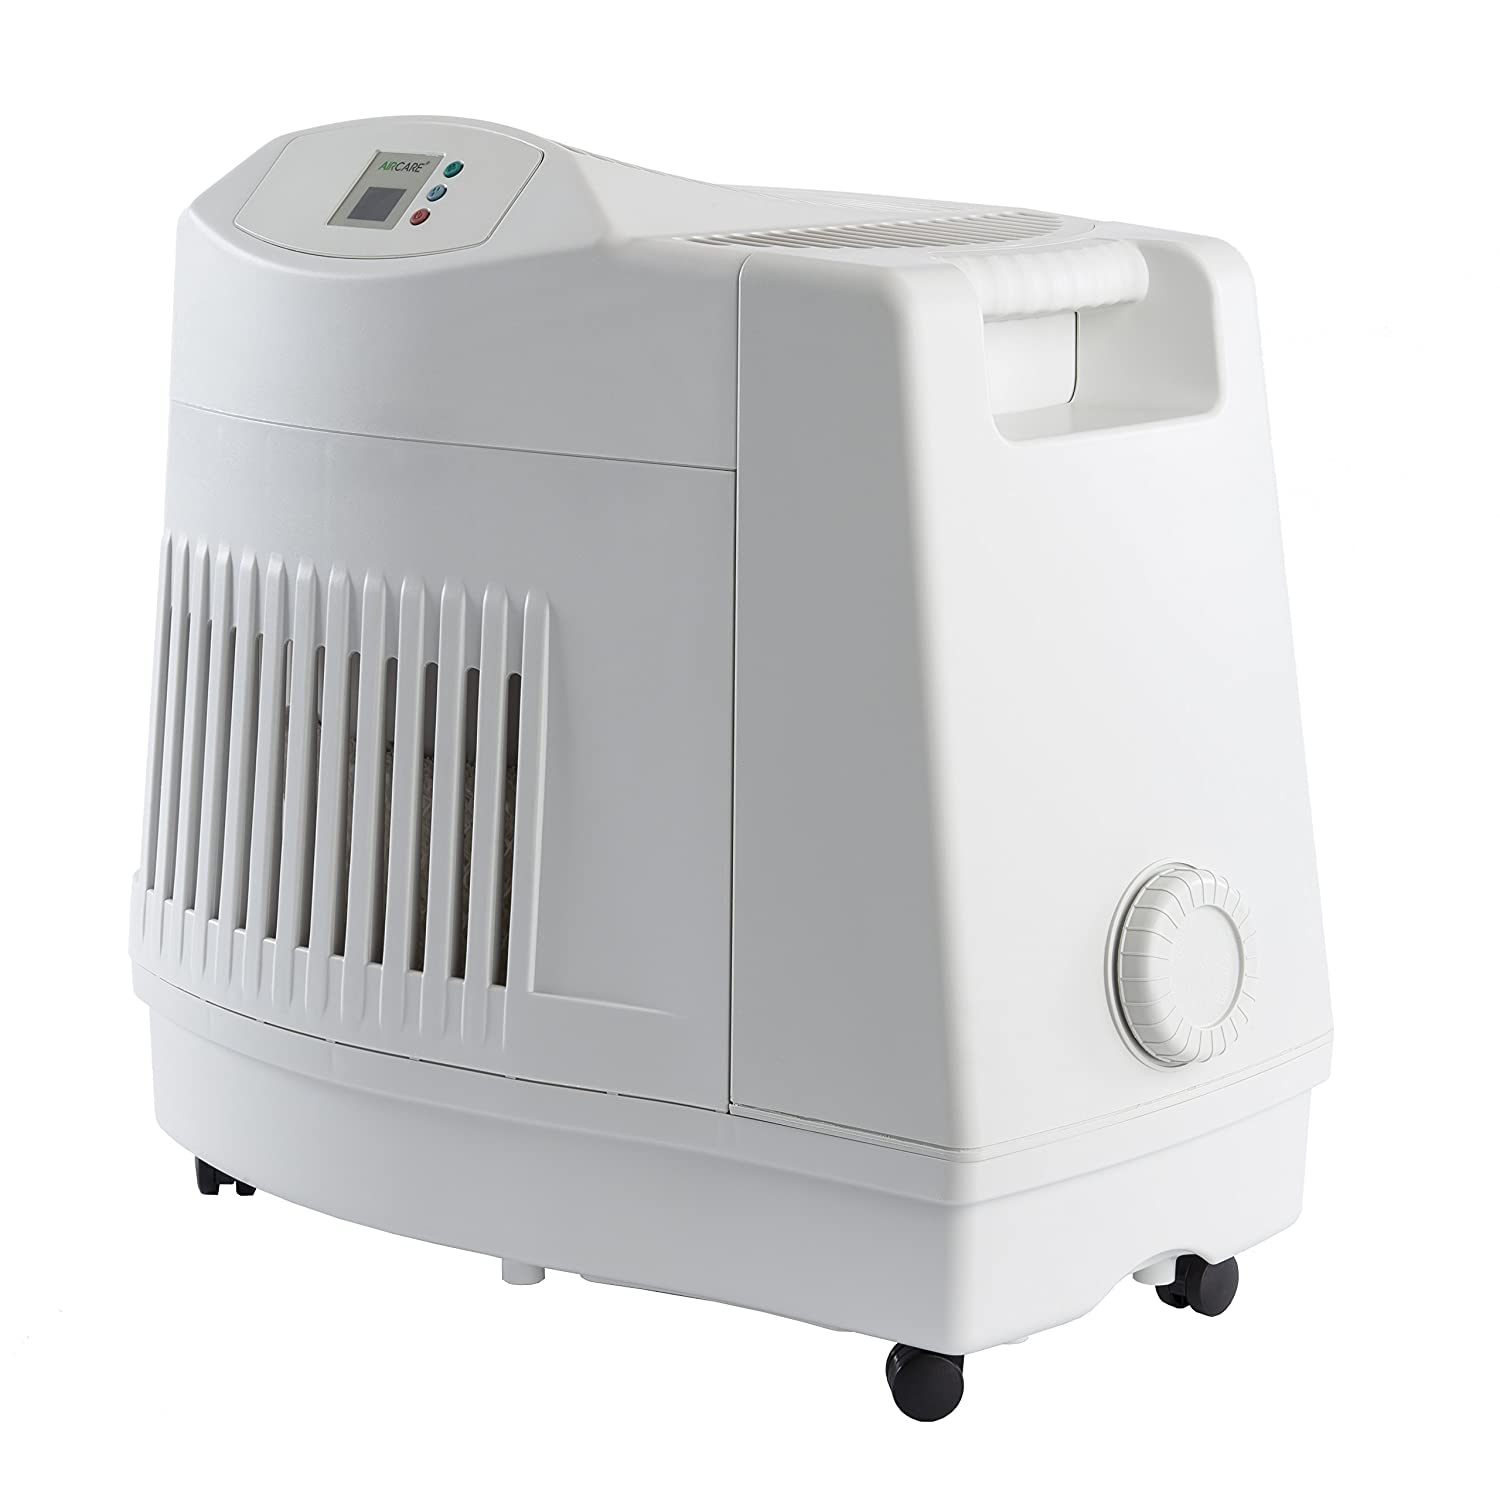 Essick Air AIRCARE MA1201 Evaporative Humidifier Black Friday Deals 2020